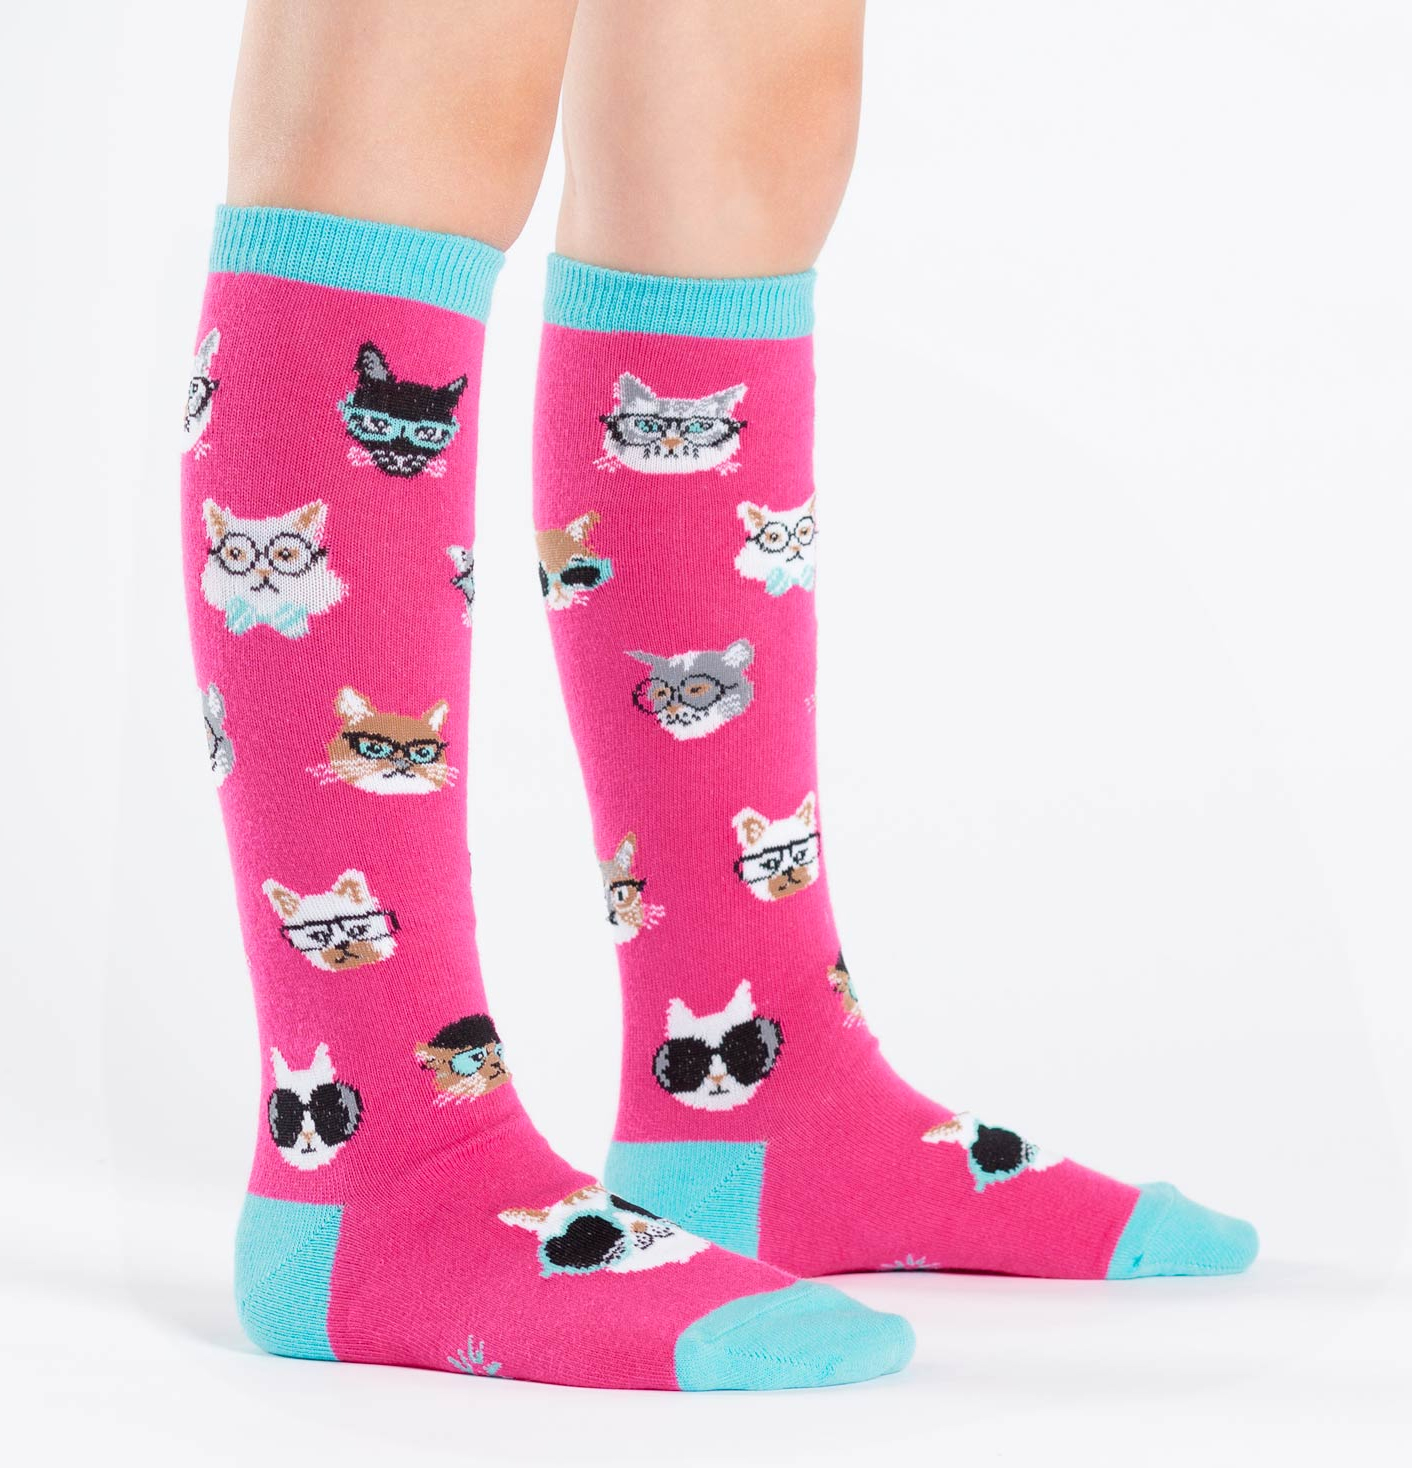 Smarty Cat Socks | Cool Cat School Supplies | back to school shopping 2017